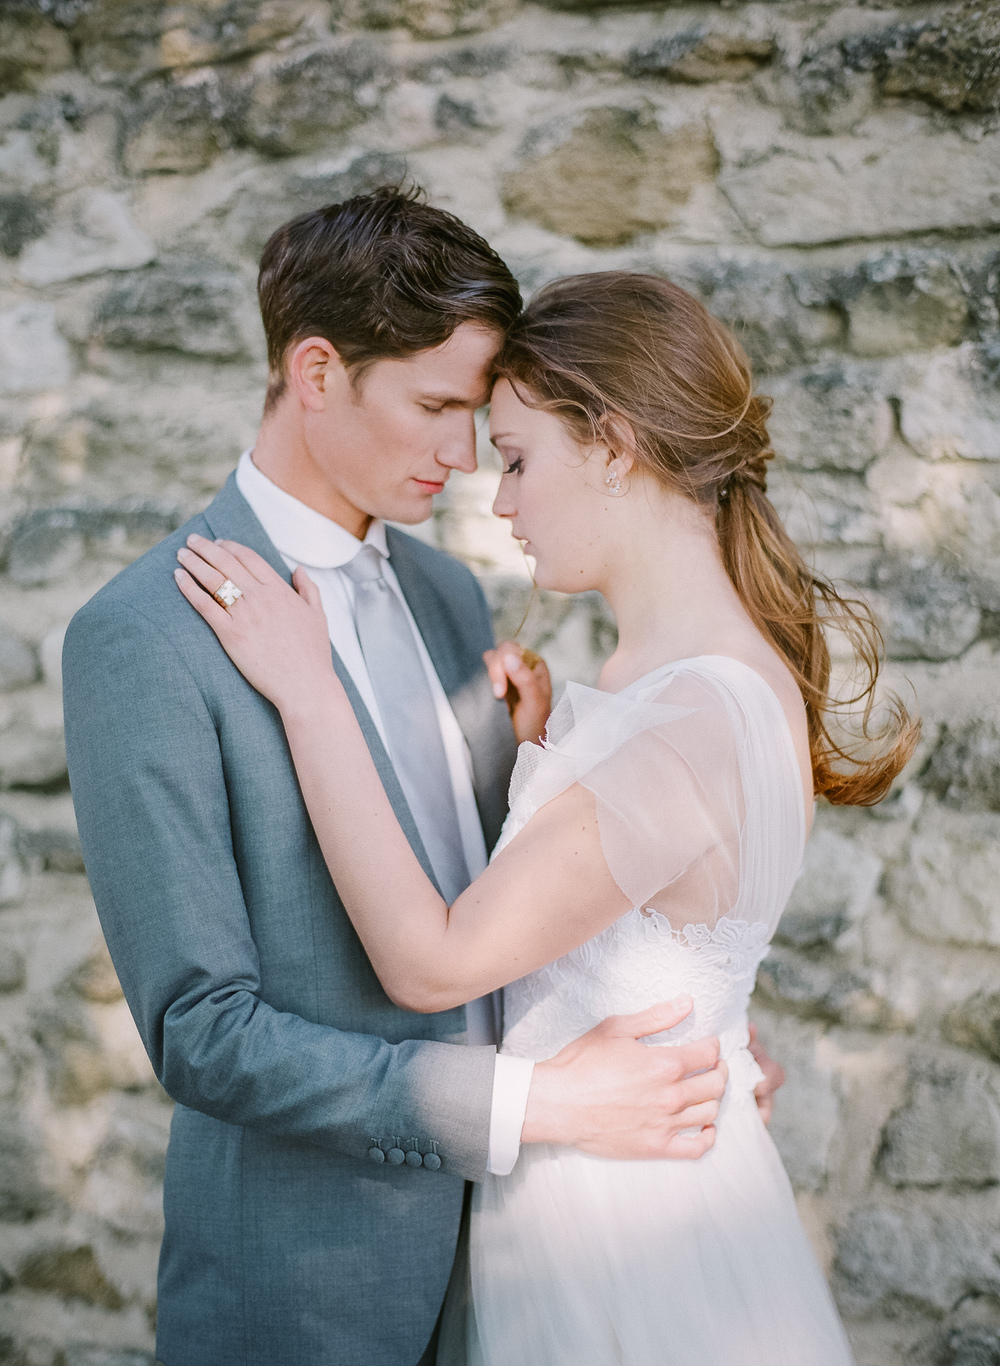 Courtney_Elizabeth_Media_France_Elopement_Light_Workshop-023.jpg